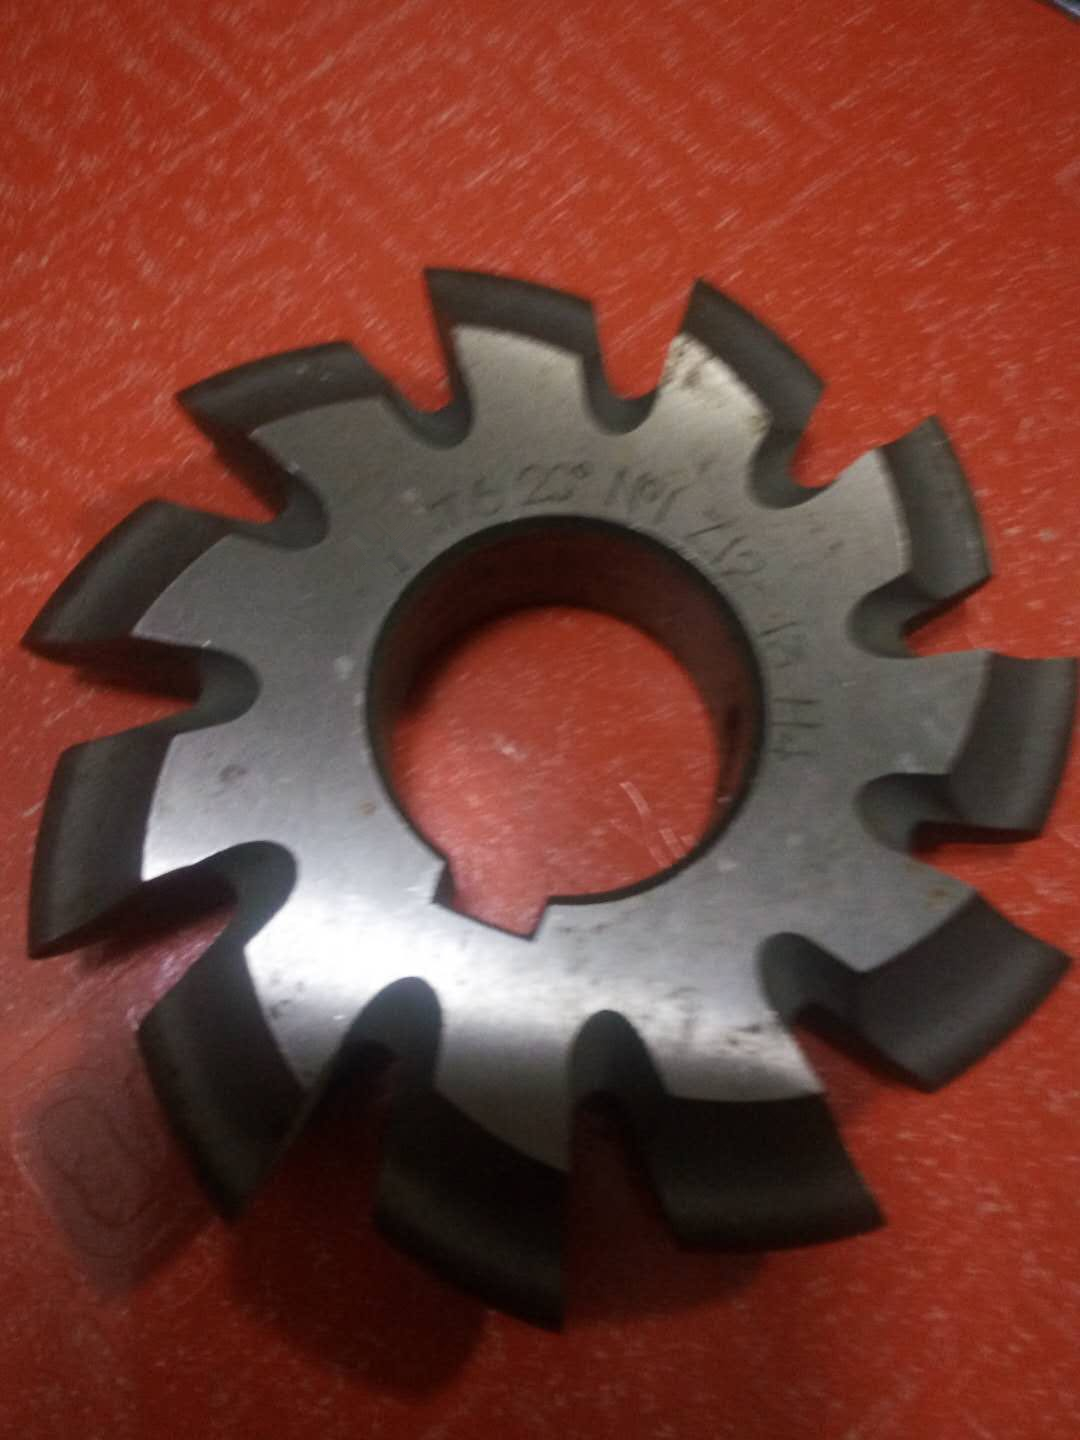 1pc Sold Separately Module 6 Pa20 Bore32 1#2#3#4#5#6#7#8# Involute Gear Cutters M6 Utmost In Convenience Machine Tools & Accessories